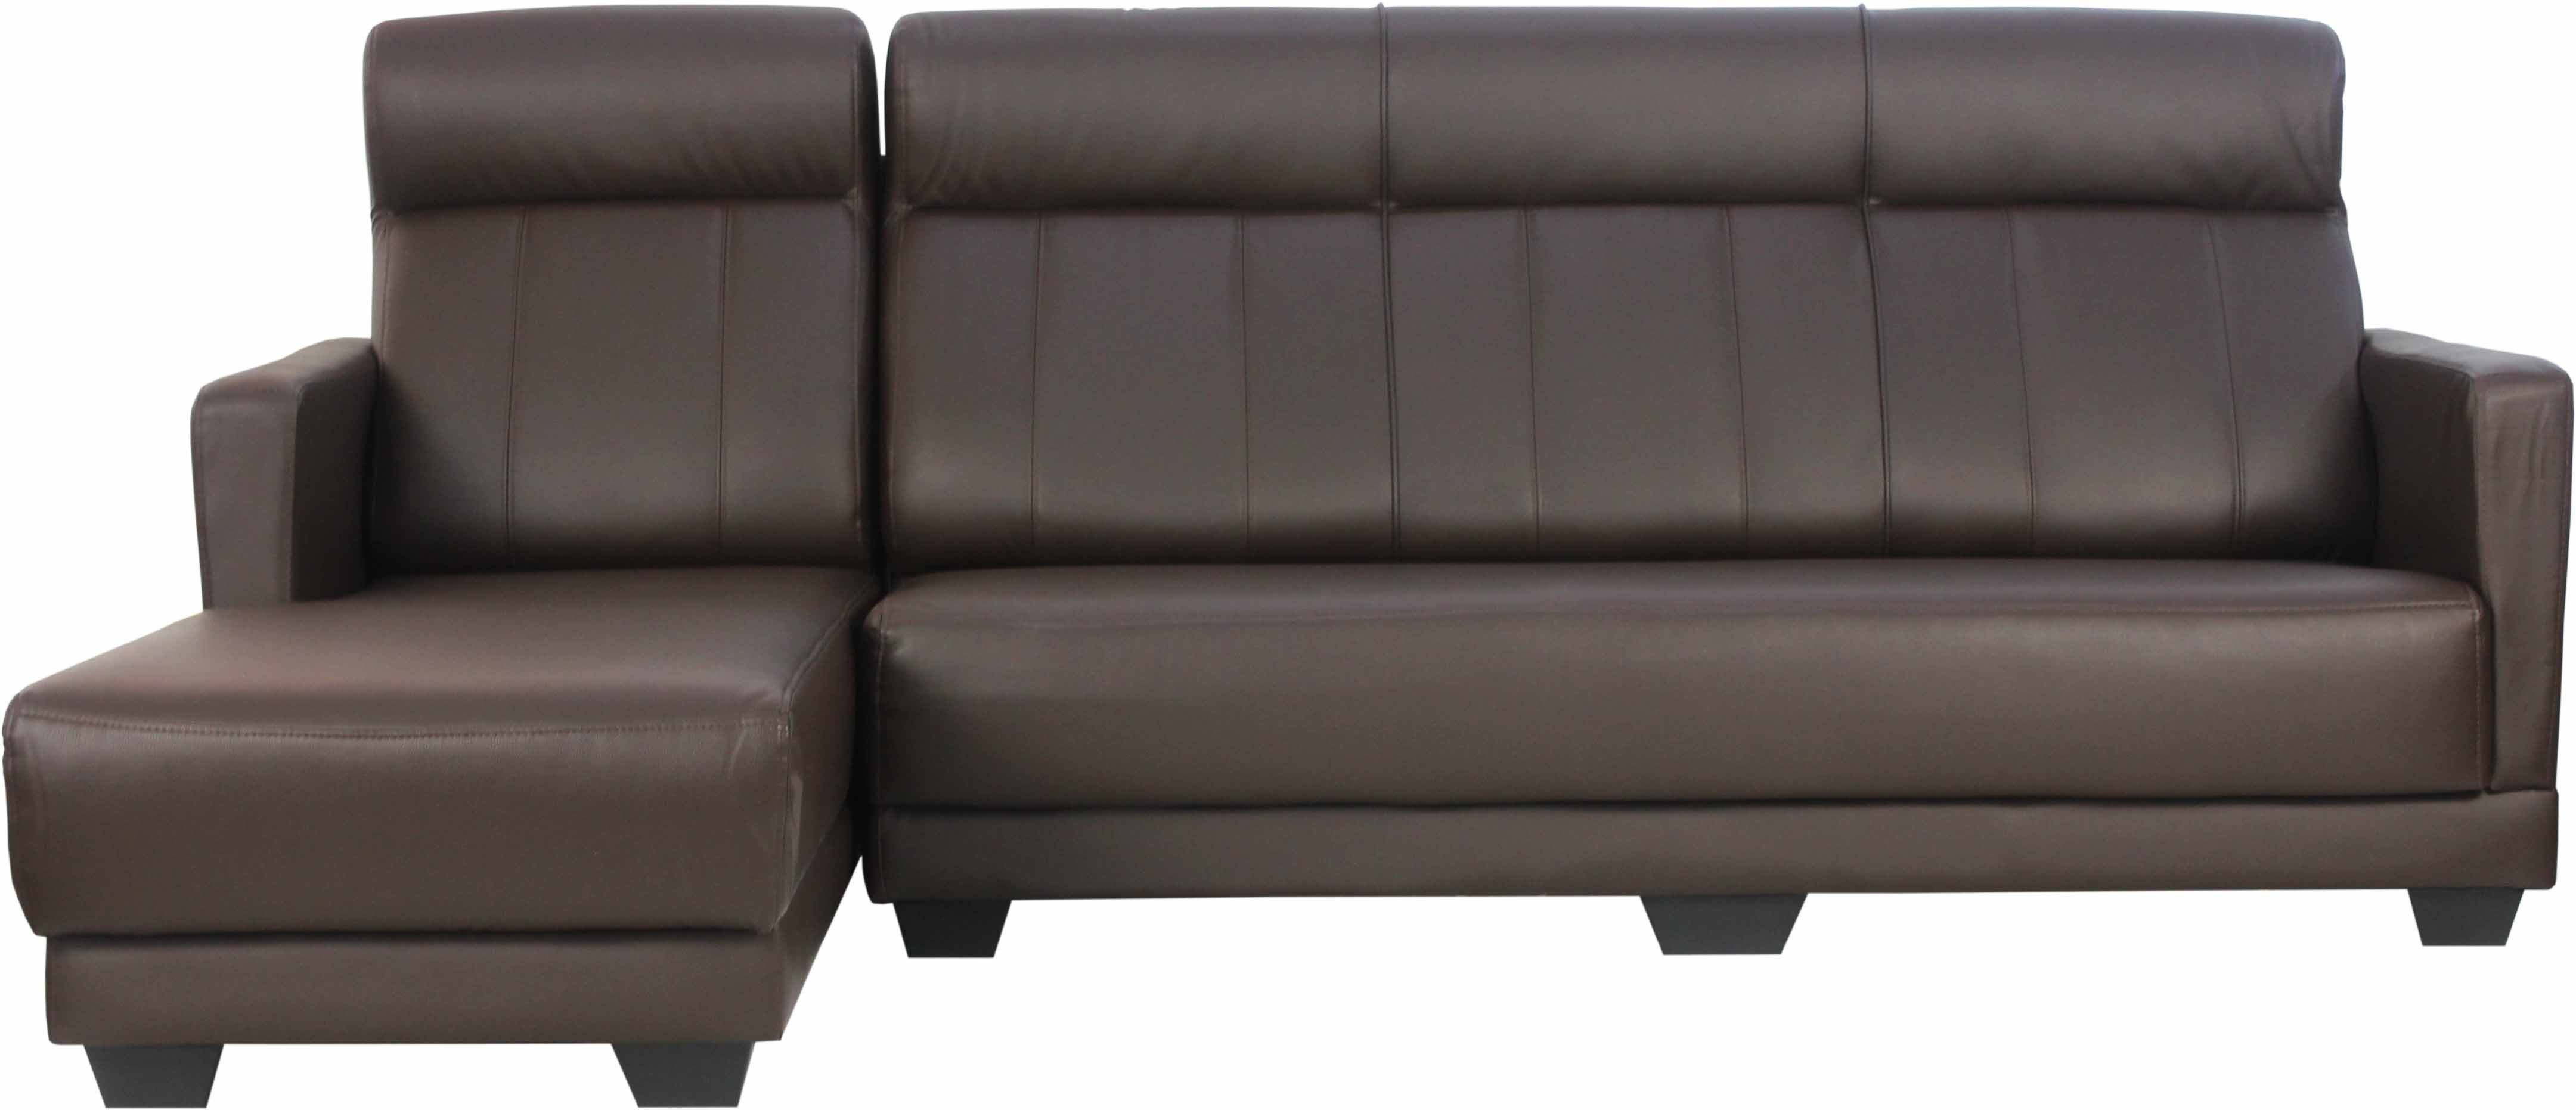 Stacy 4 seater l shaped sofa set furniture home d cor for 9 seater sofa set